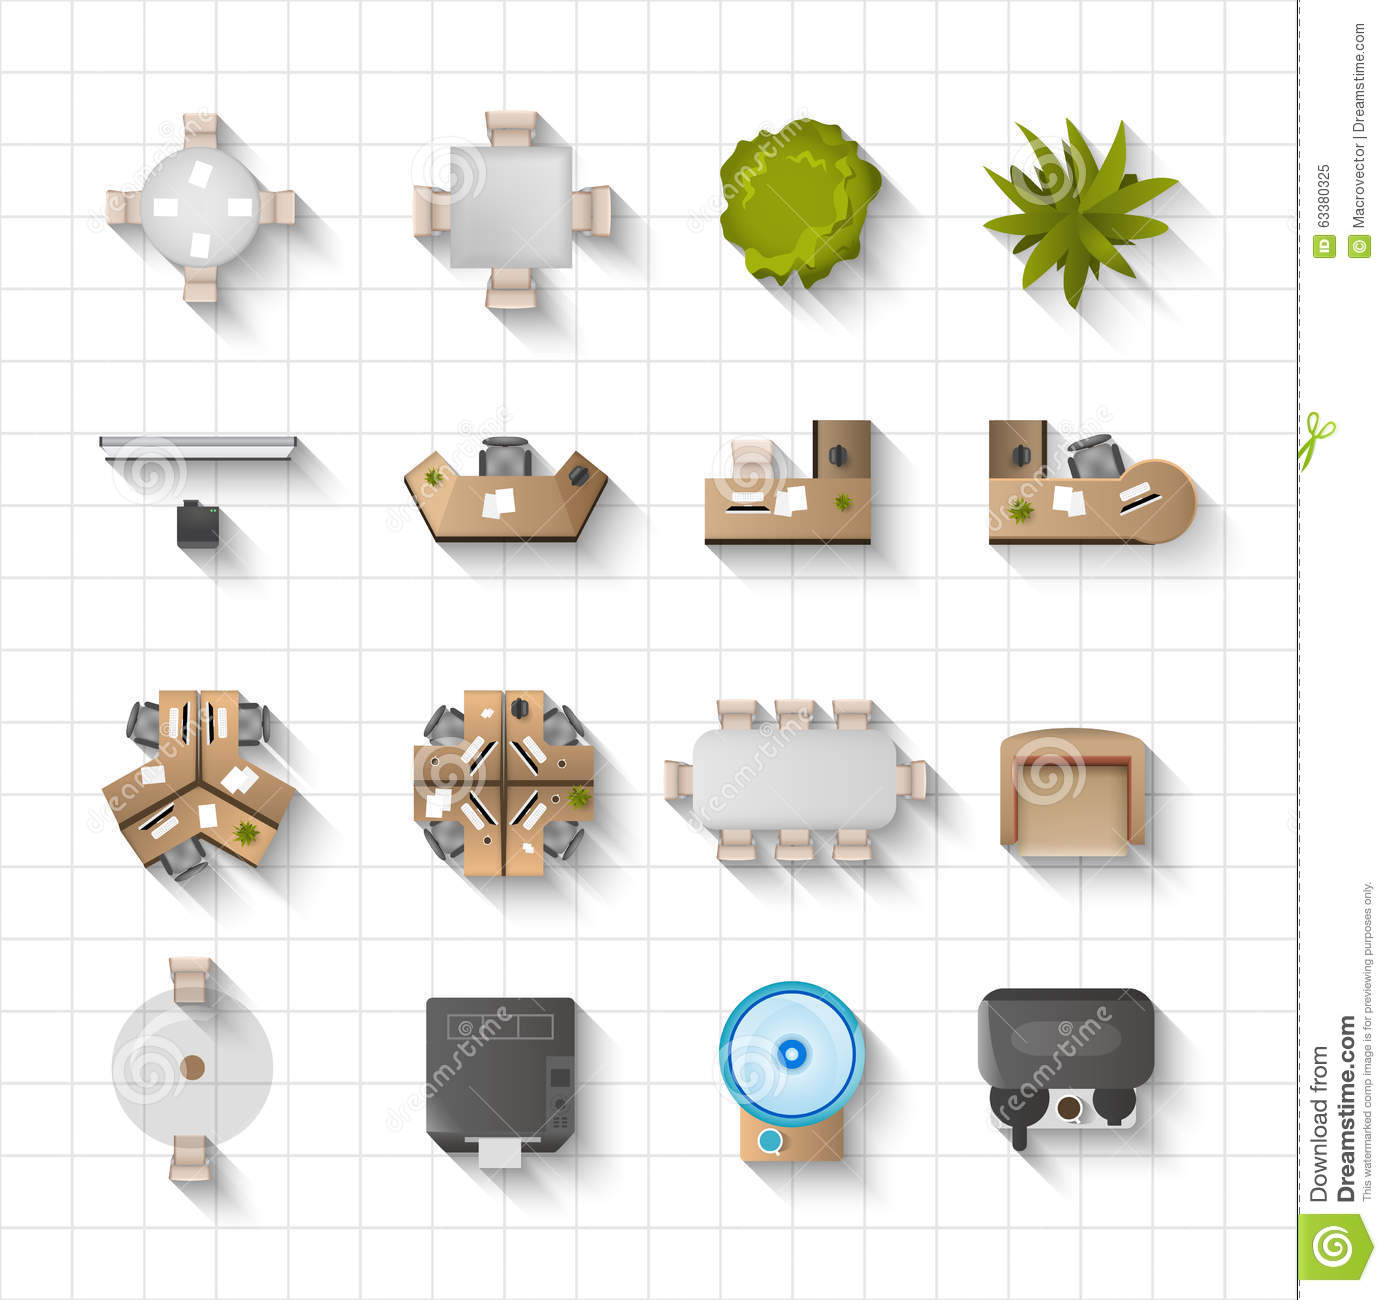 Office Interior Design Vector Picture Ideas With Easy Floral On Stock Illustration Icons